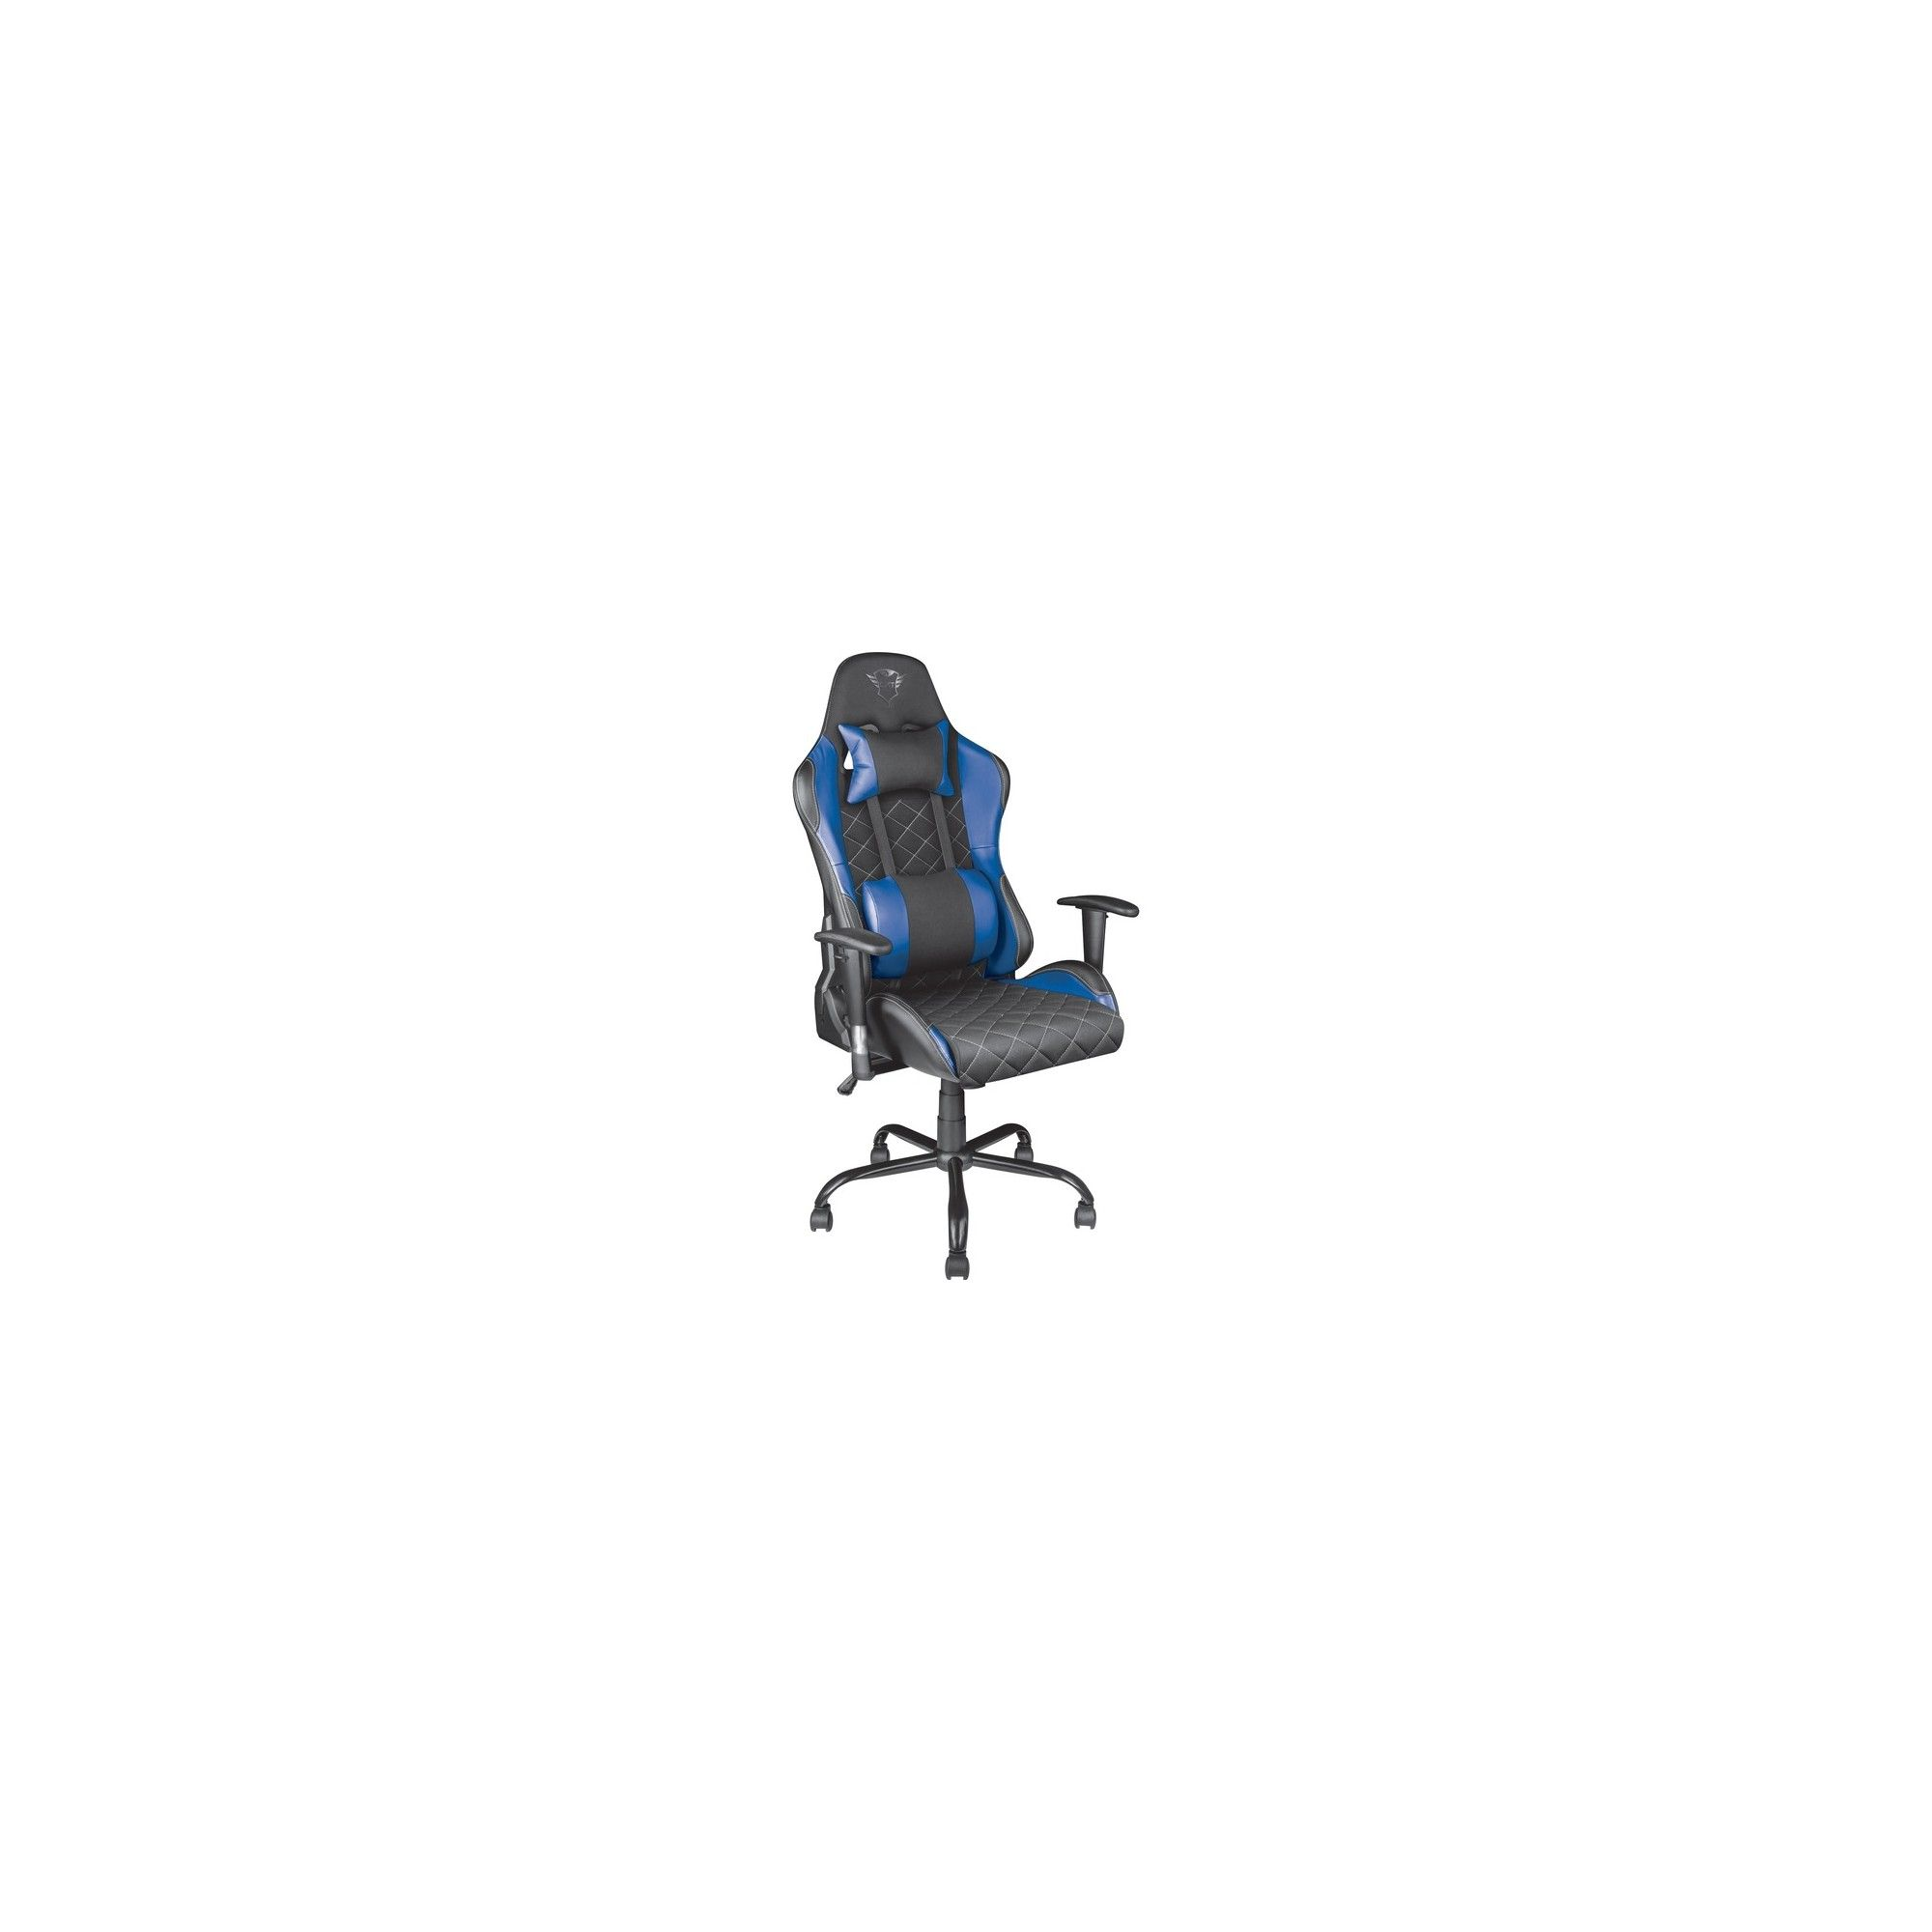 Trust Gxt 707b Resto Gaming Chair Blue Ergonomic Adjustable